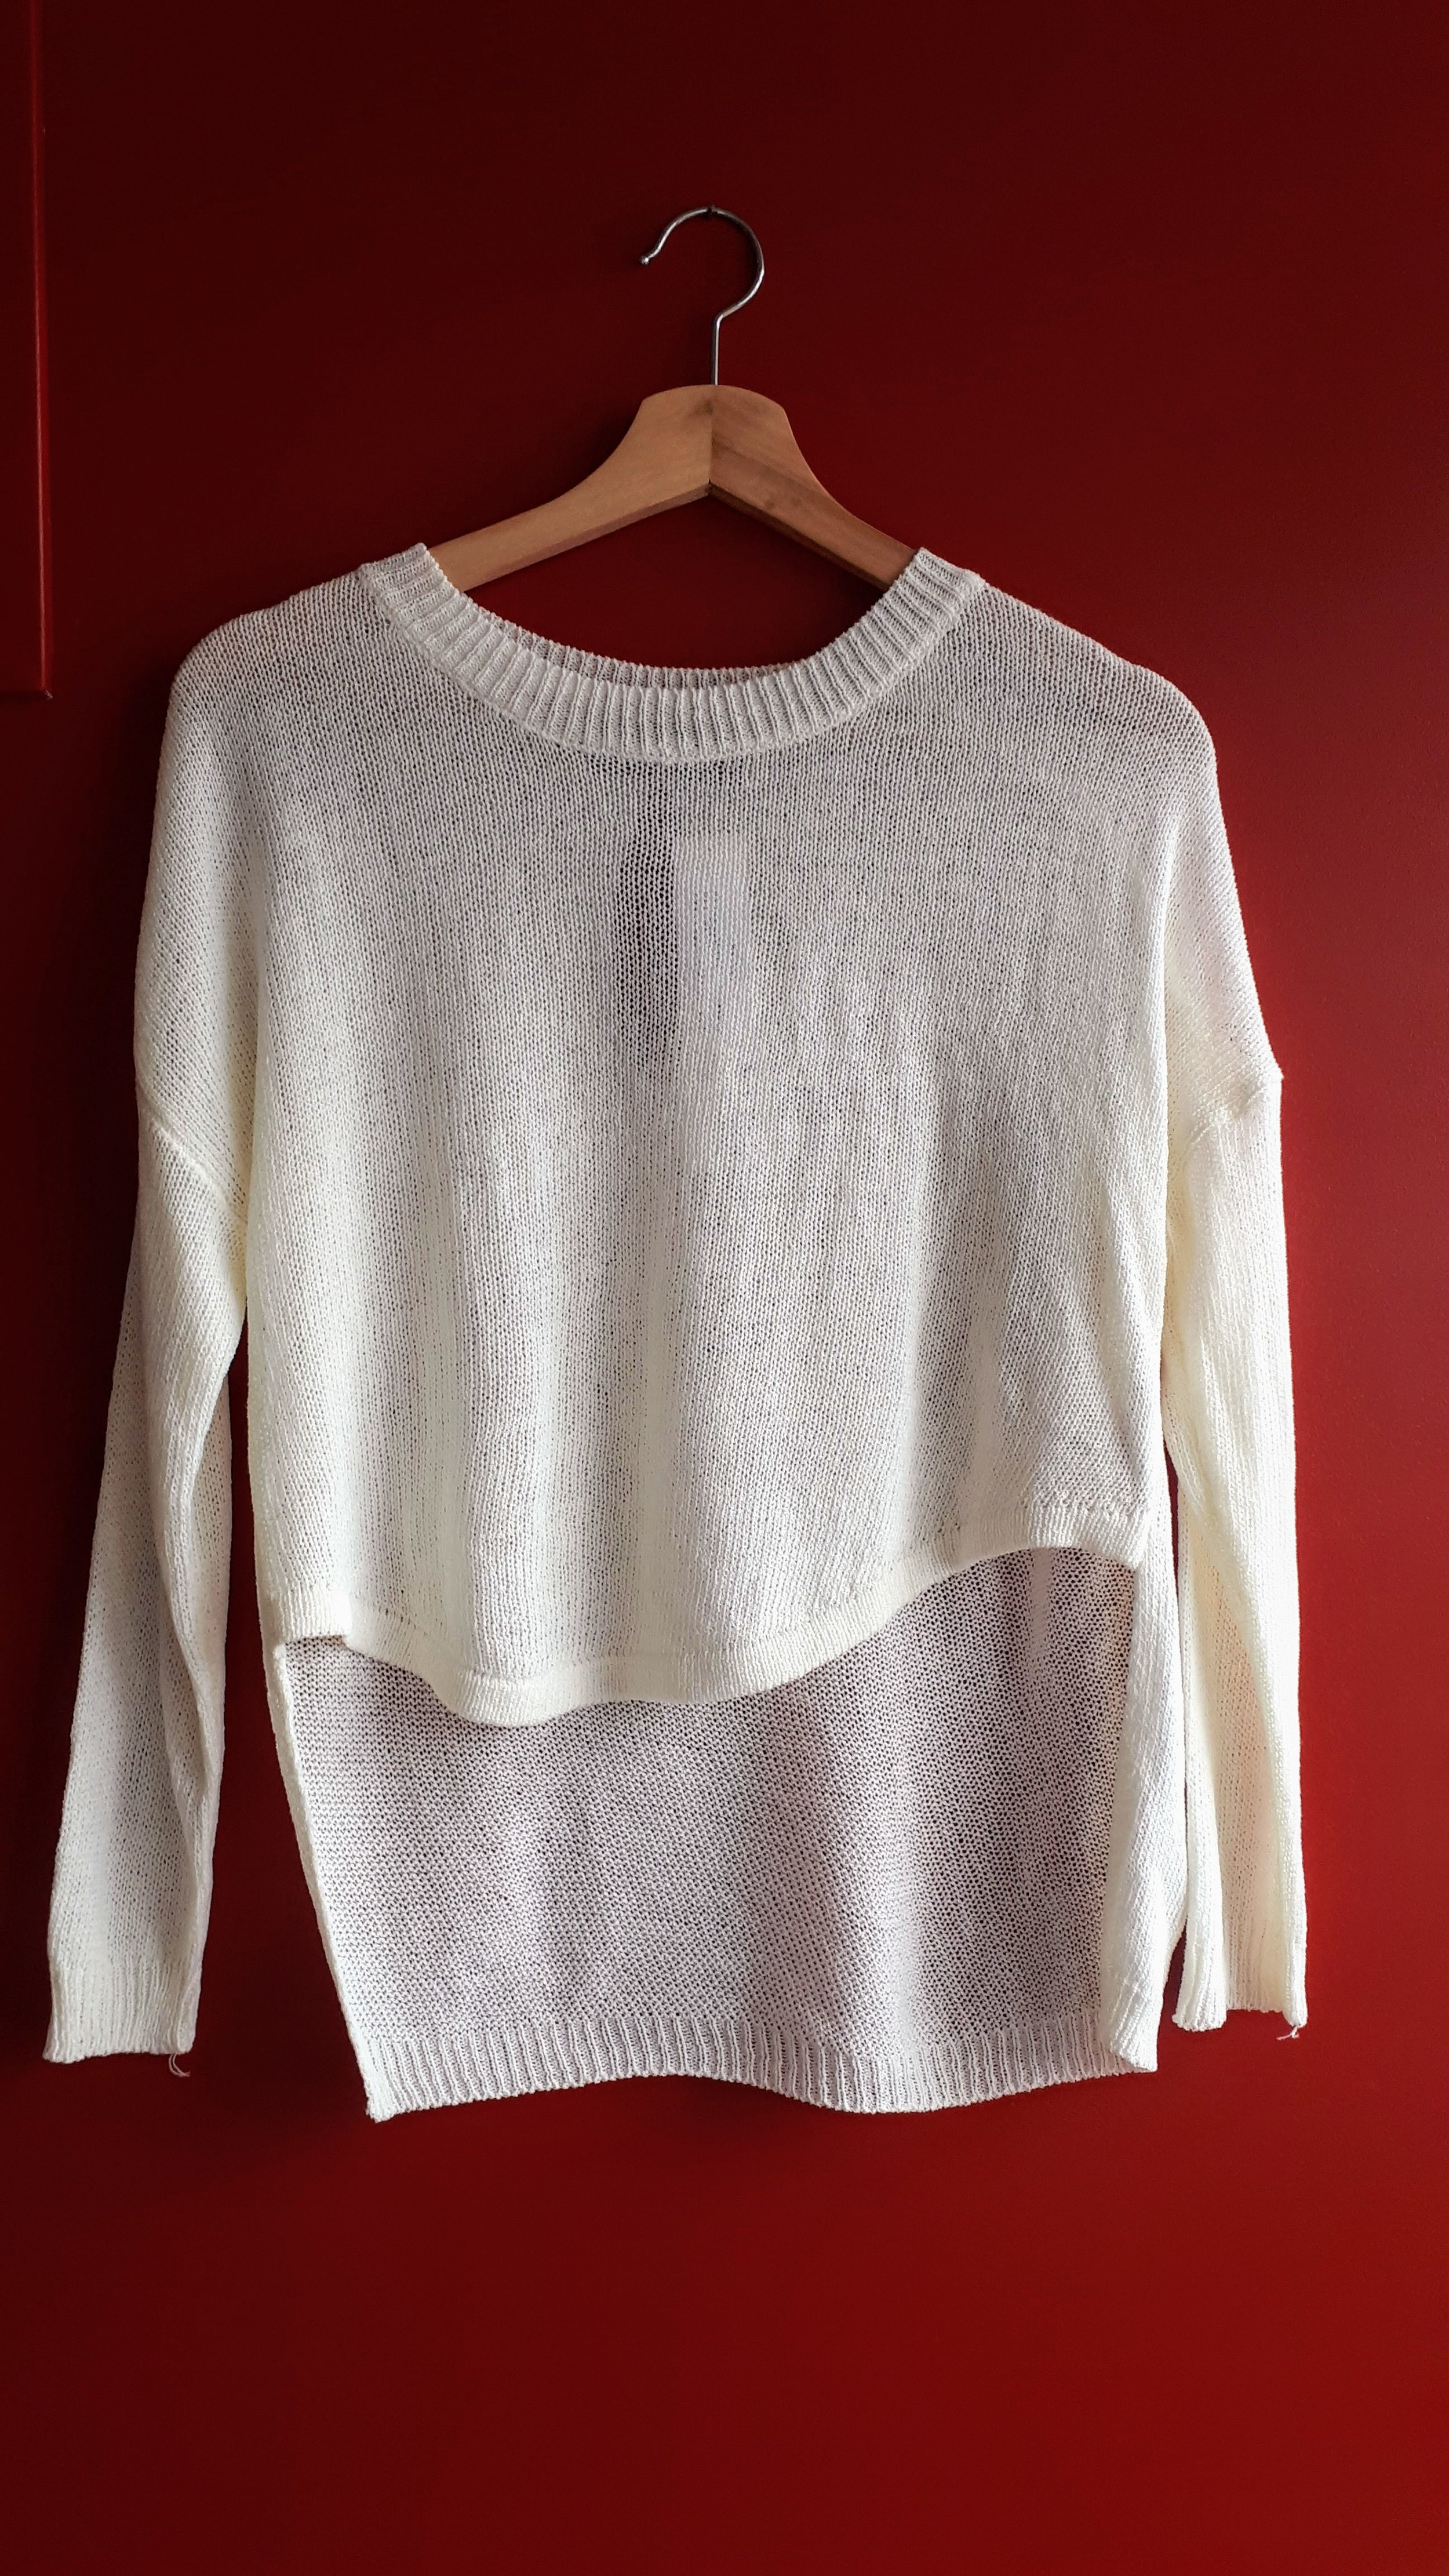 Workhall top (NWT); Size S, $40